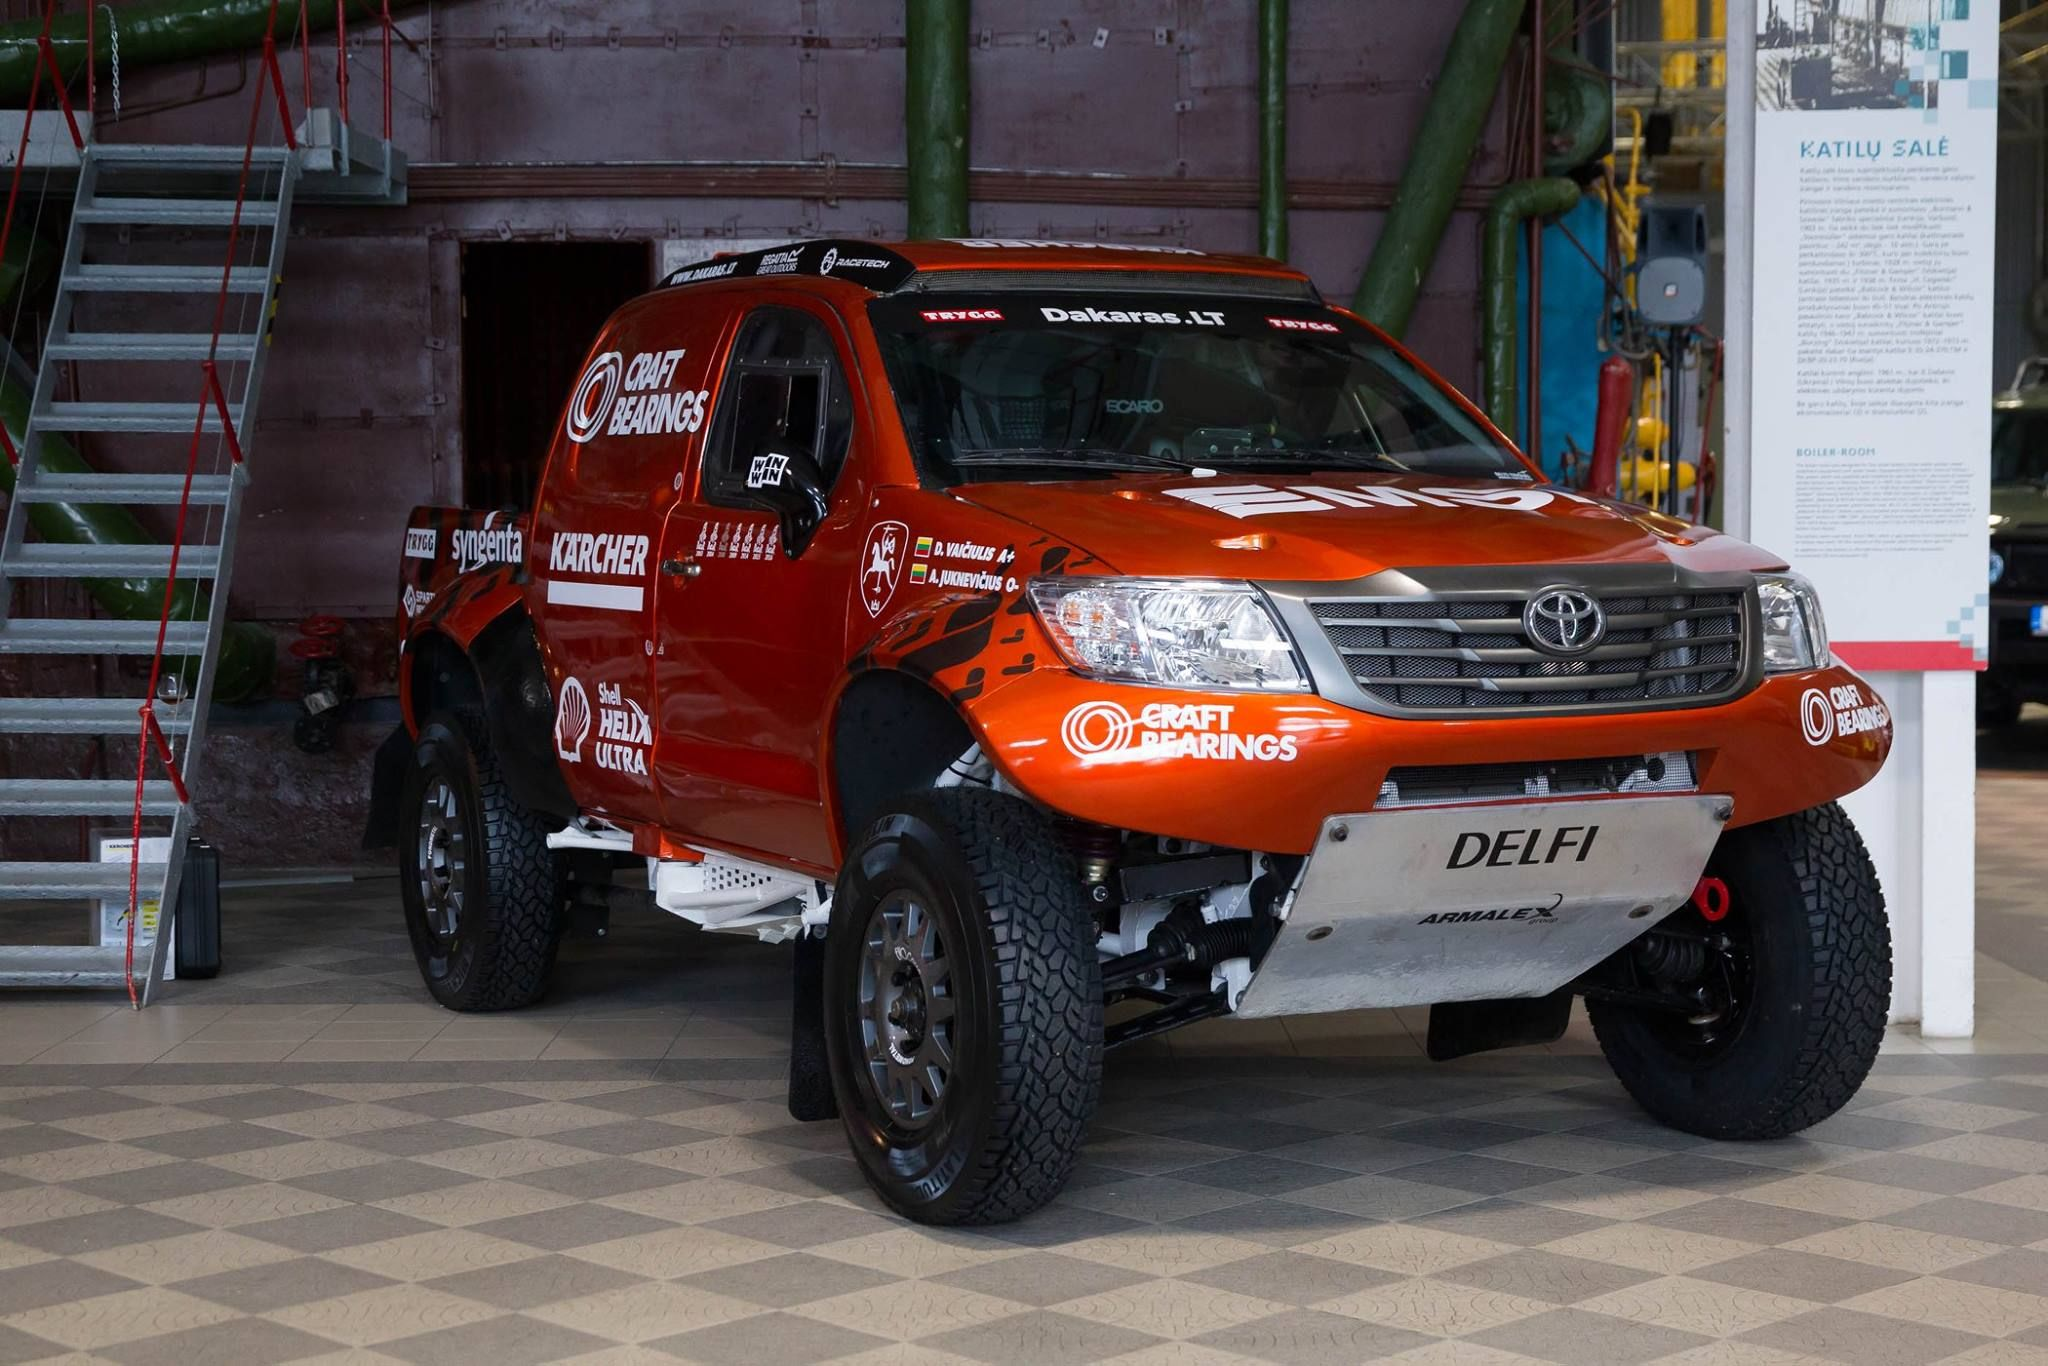 Dakarcorse Wheels On Toyota Hilux Evocorsewheels Dakarcorse Oranghilux Toyotahilux Offroad Dakar Followus Toyota Hilux Rally Racing Toyota